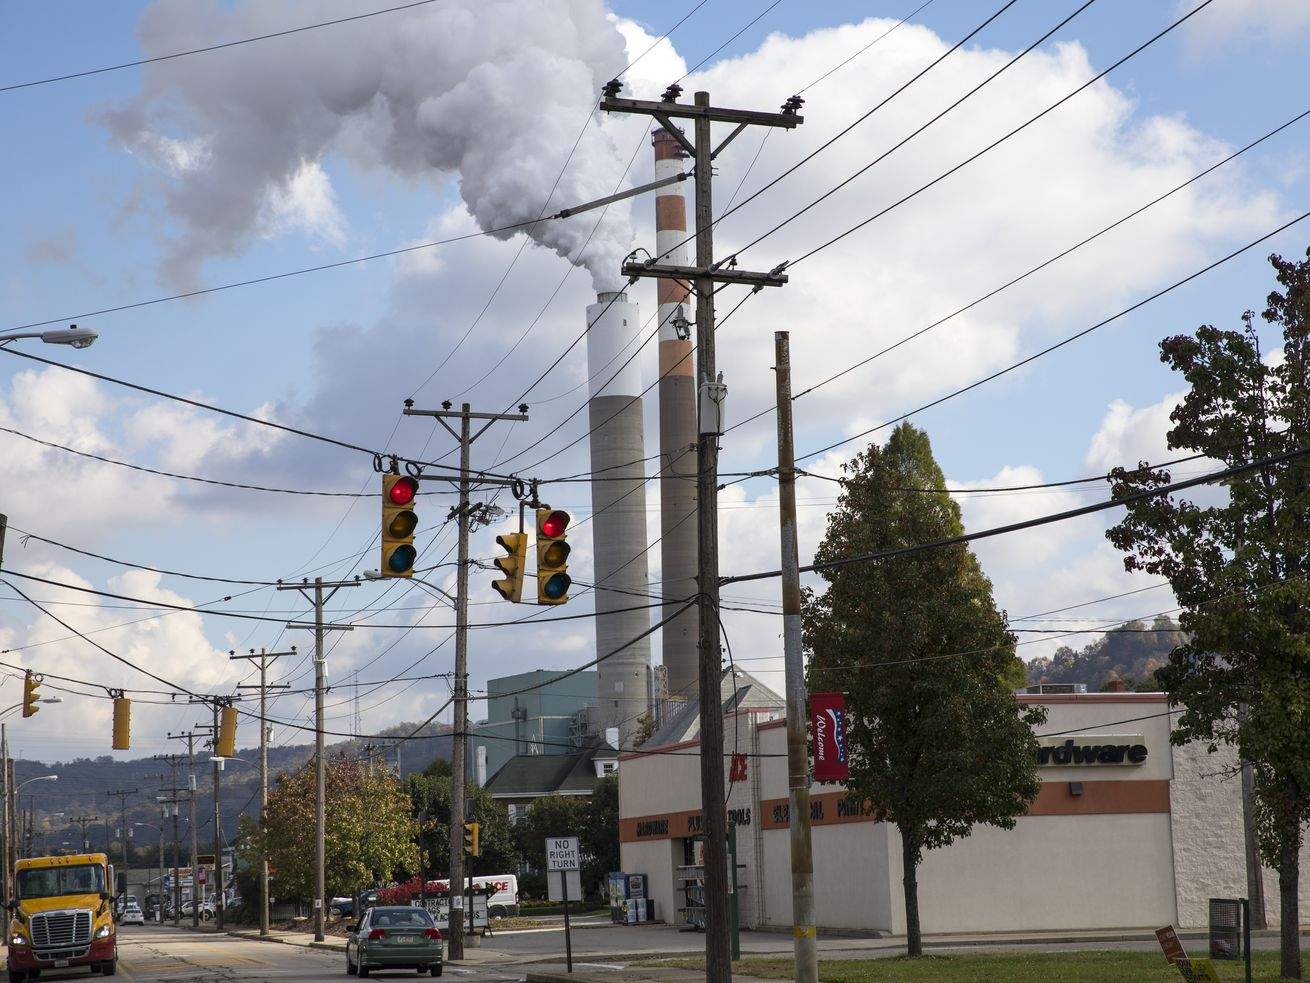 A view of the smoke stack of the Cheswick coal-fired power plant in Springdale, Pennsylvania. The United States has produced more carbon dioxide emissions than any other country since 1750, making it one of the largest contributors to climate change.